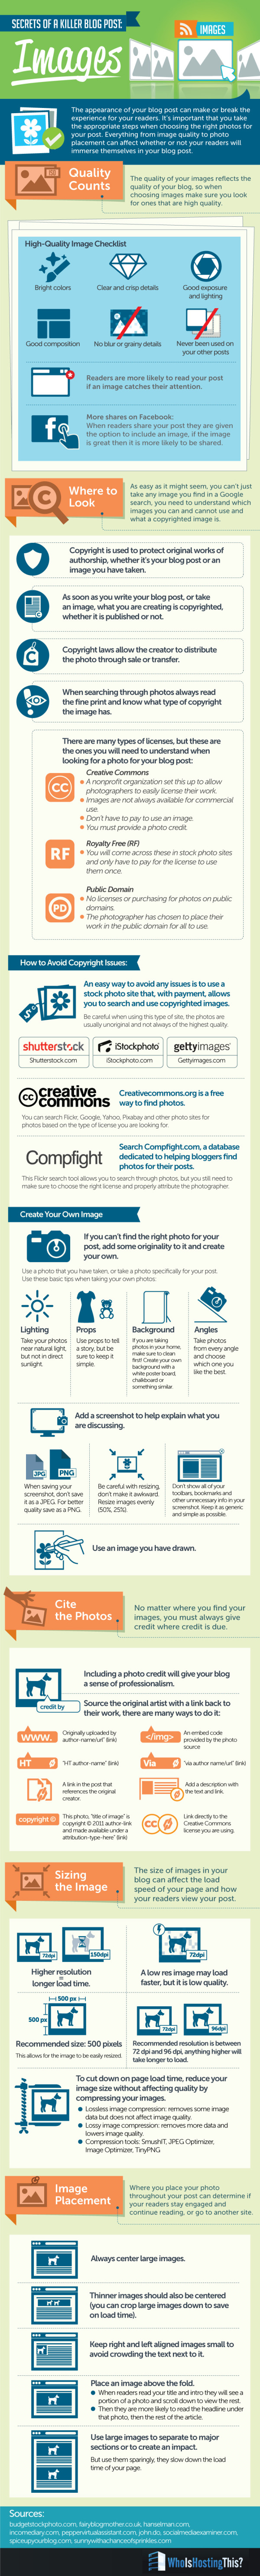 Secrets of a Killer Blog Post: Images infographic